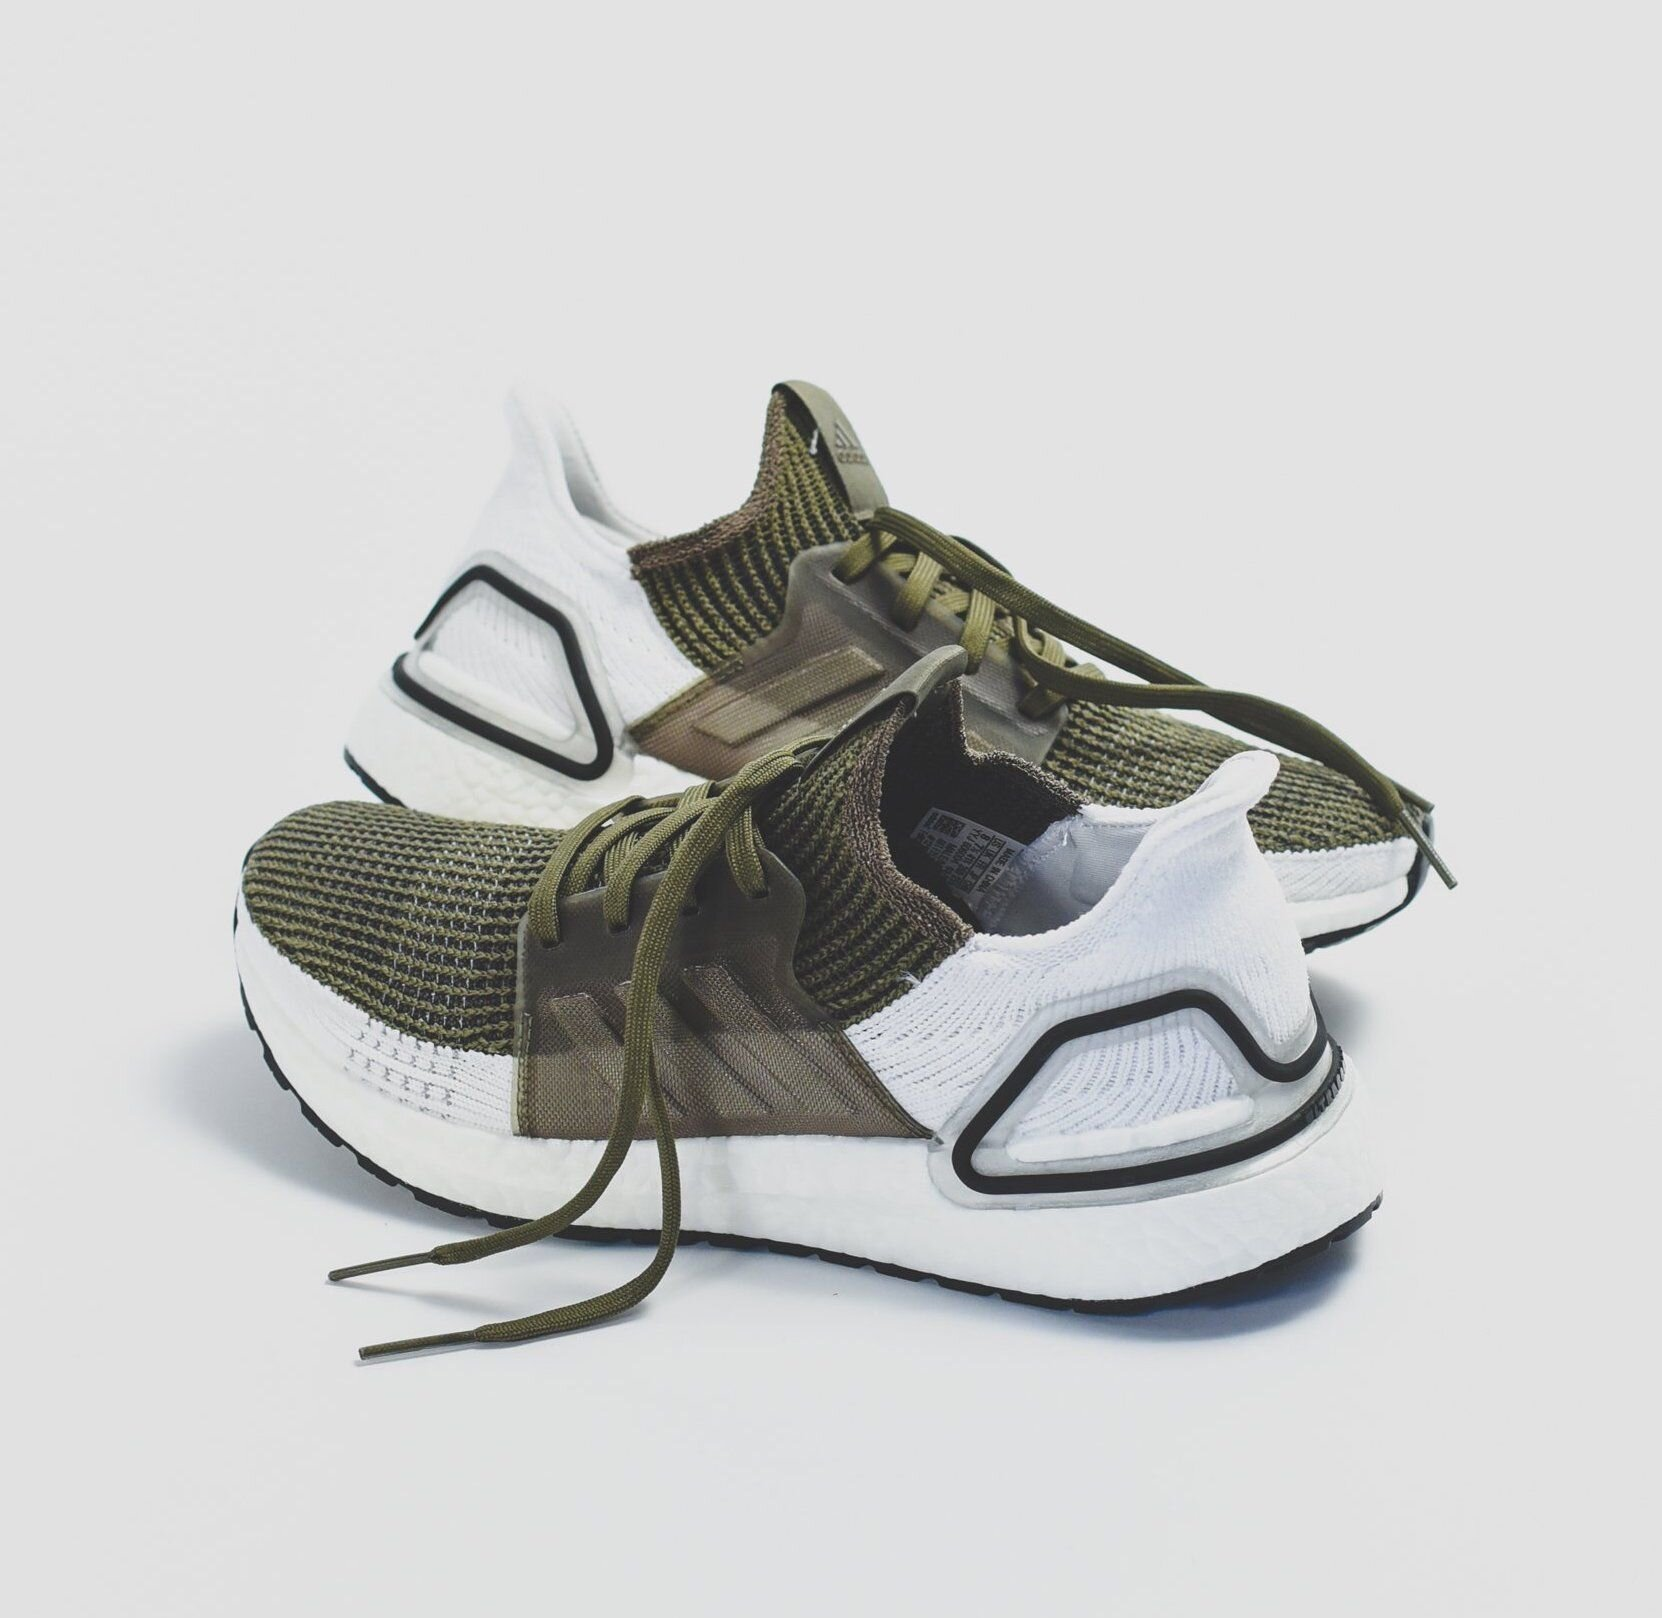 The adidas Ultra Boost 19